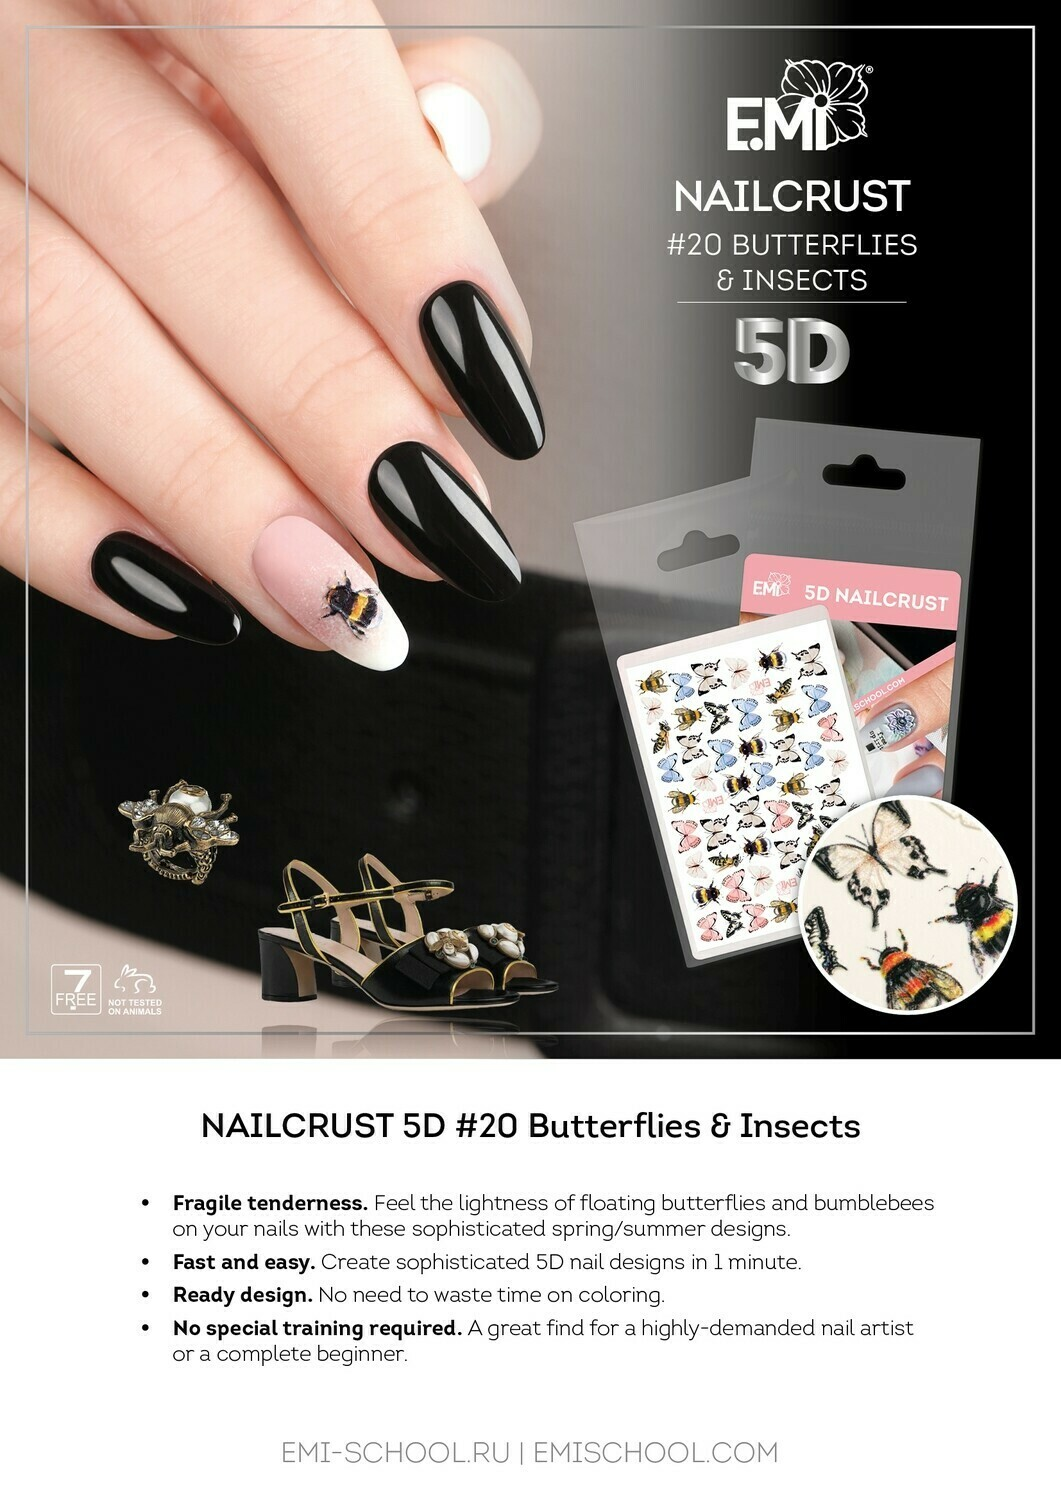 NAILCRUST 5D #20 Butterflies & Insects